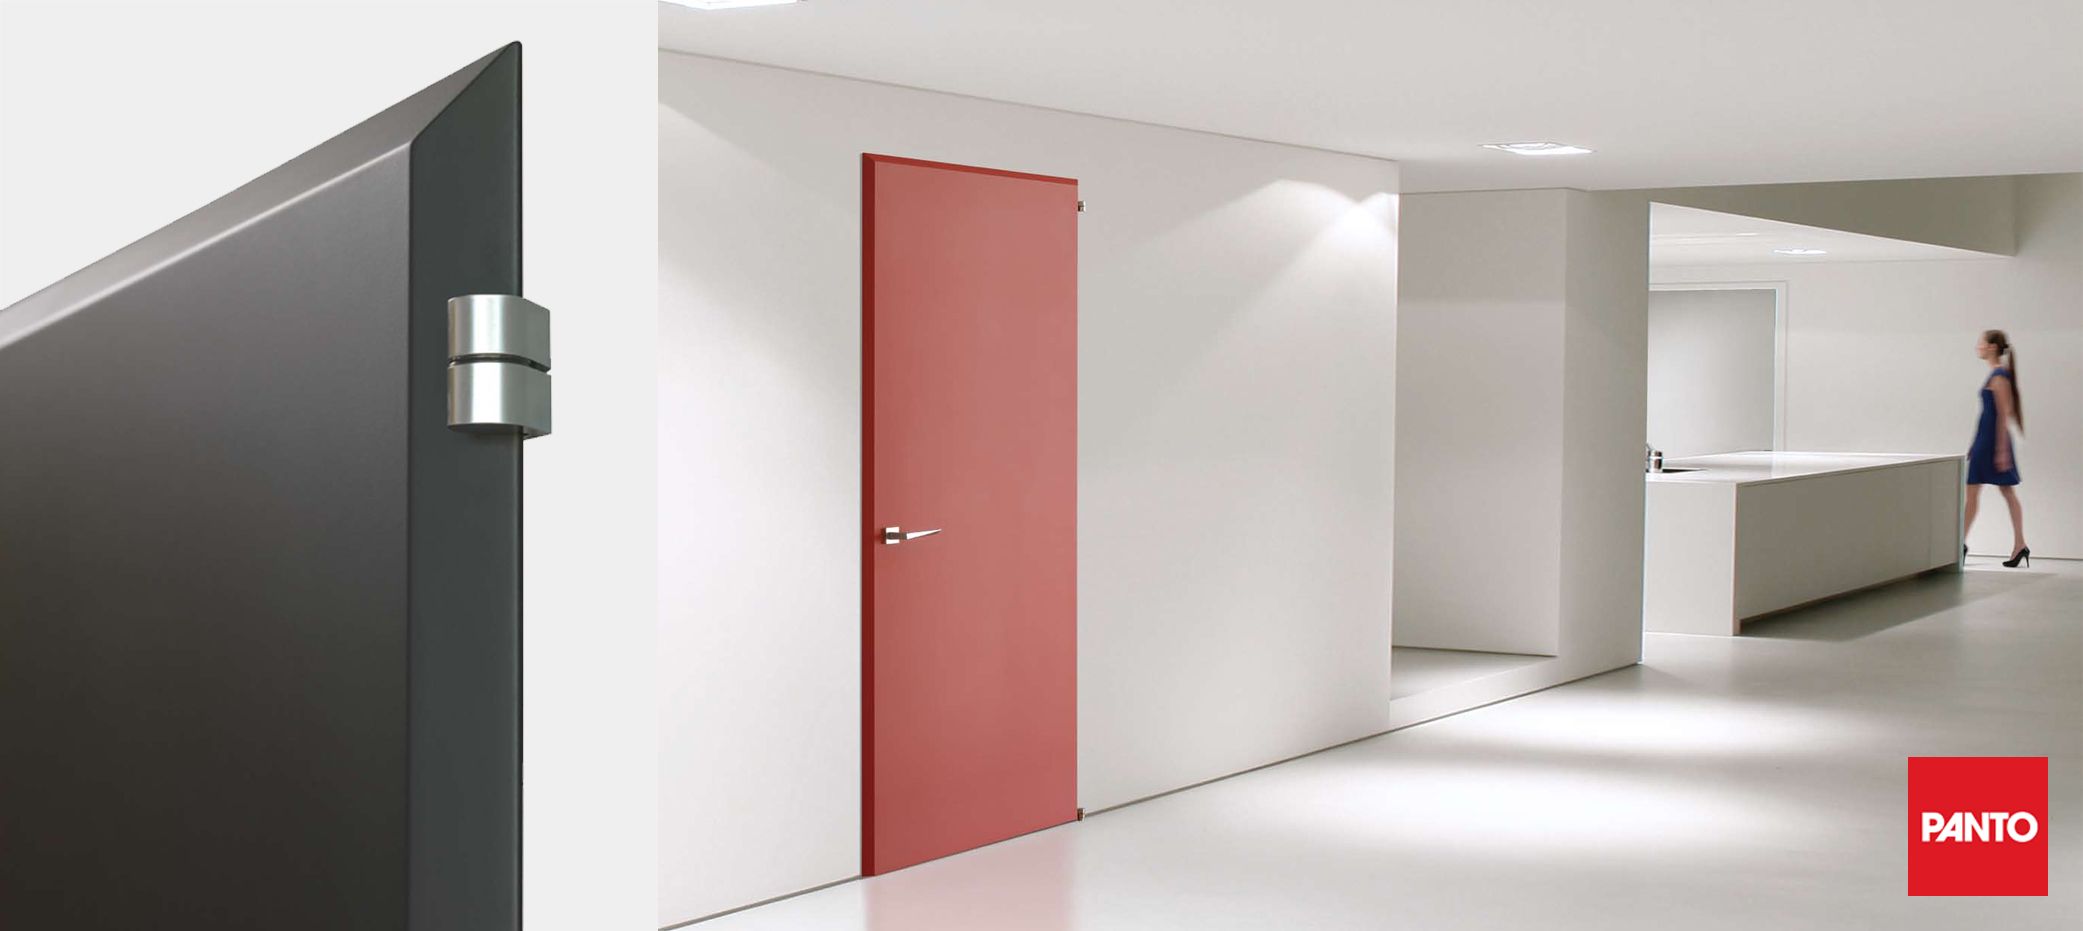 diamante internal door